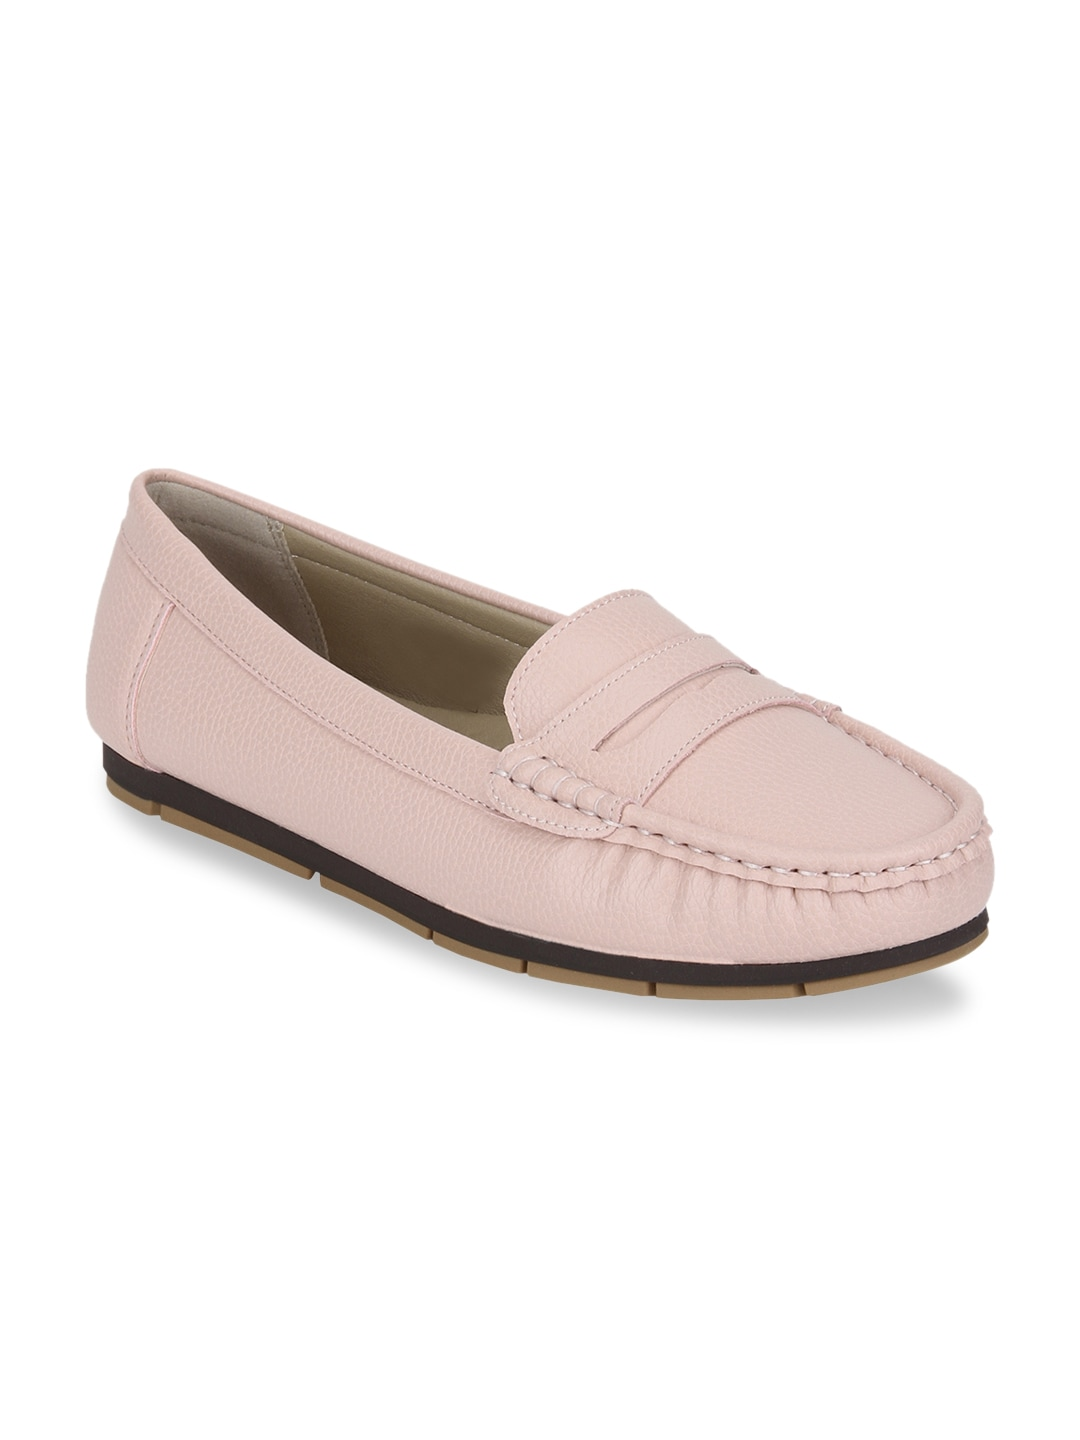 5f460a6157fc Casual Shoes For Women - Buy Women s Casual Shoes Online from Myntra